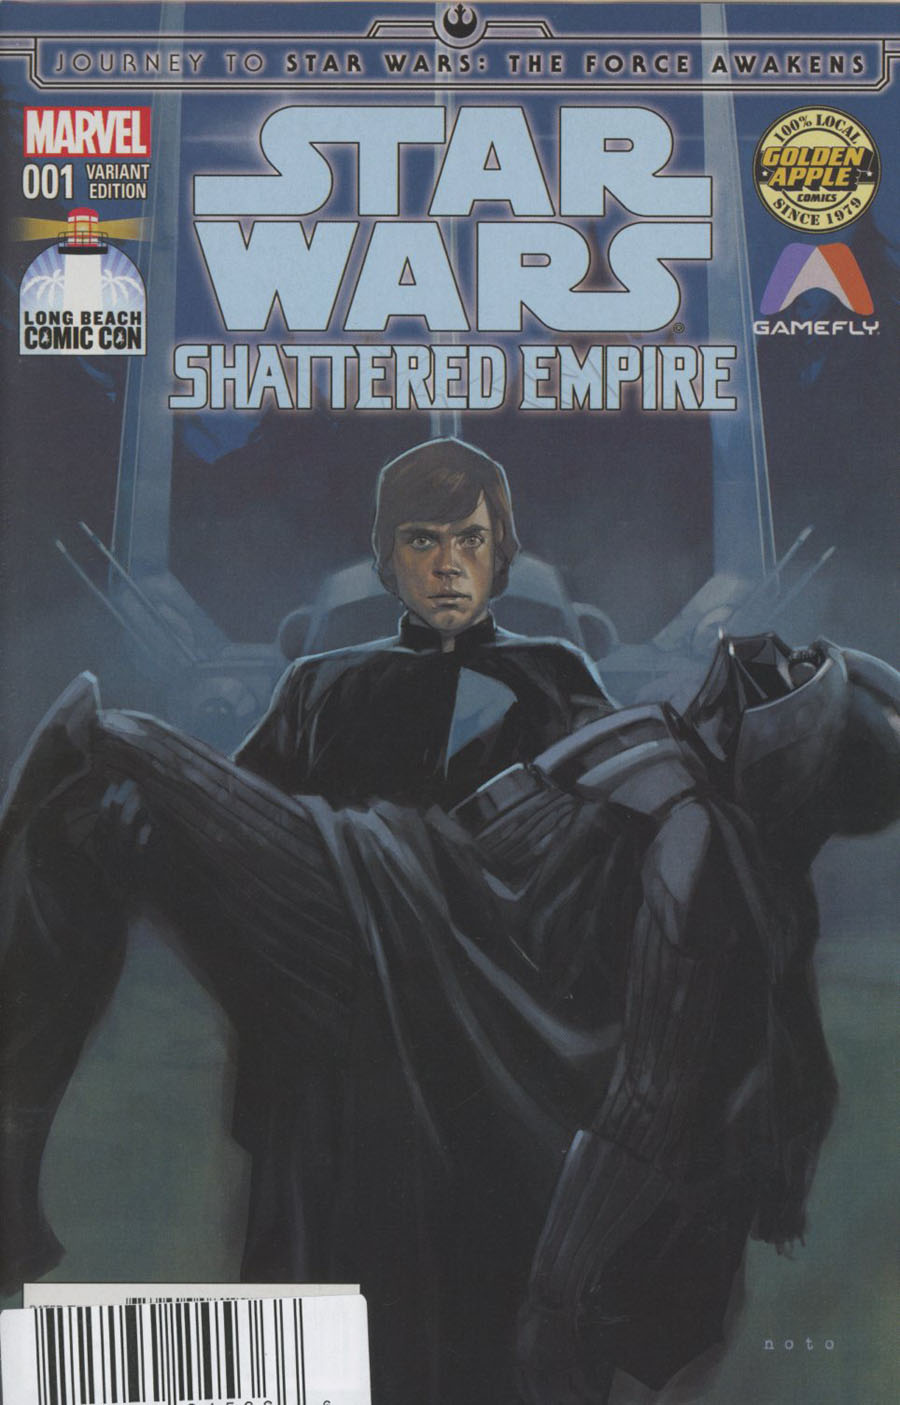 Journey To Star Wars Force Awakens Shattered Empire #1 Cover G DF LBCC Golden Apple Gamefly Exclusive Phil Noto Variant Cover